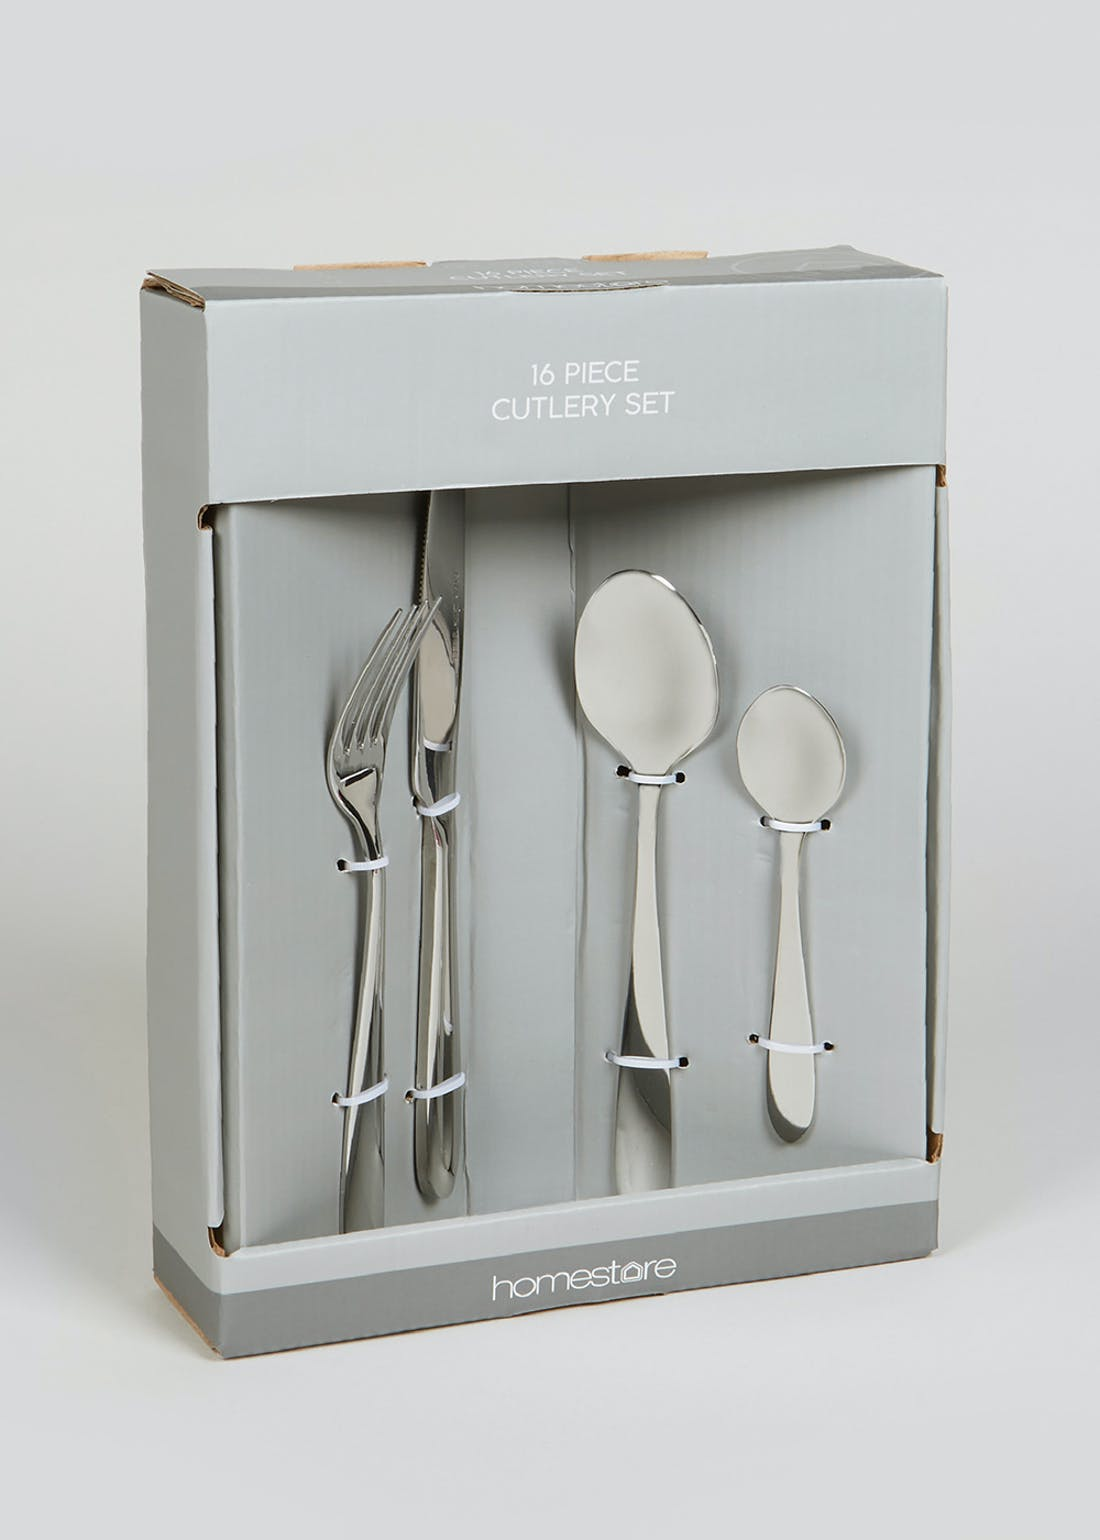 16 Piece Stainless Steel Cutlery Set